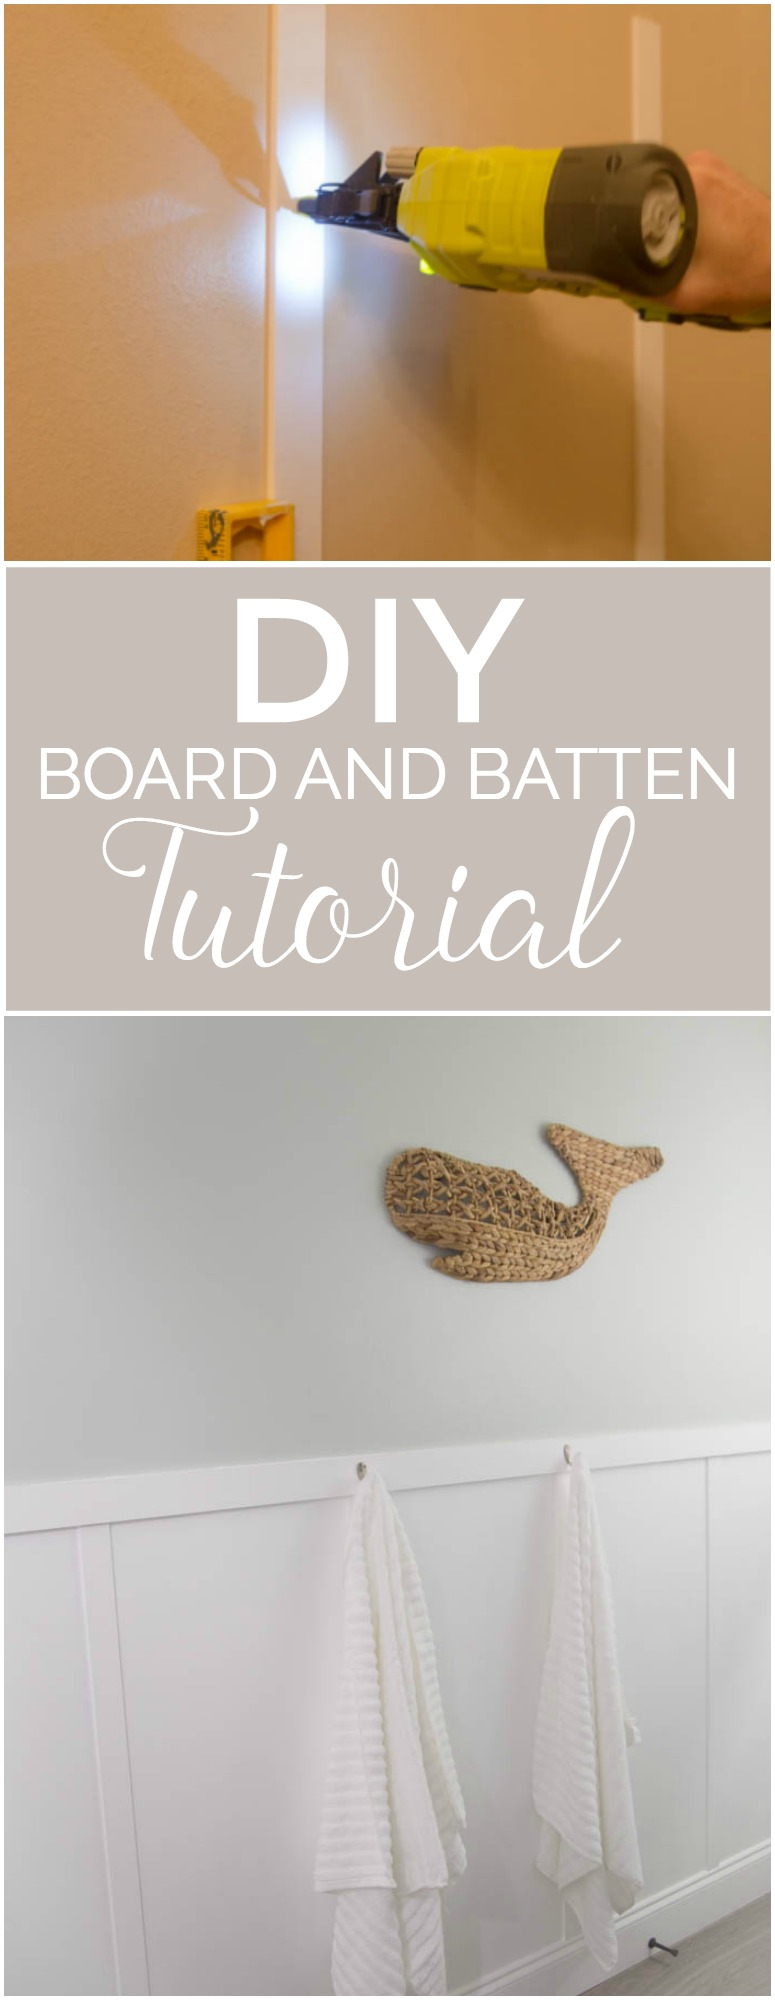 DIY Board and Batten Tutorial - Add Board and Batten without replacing your baseboards